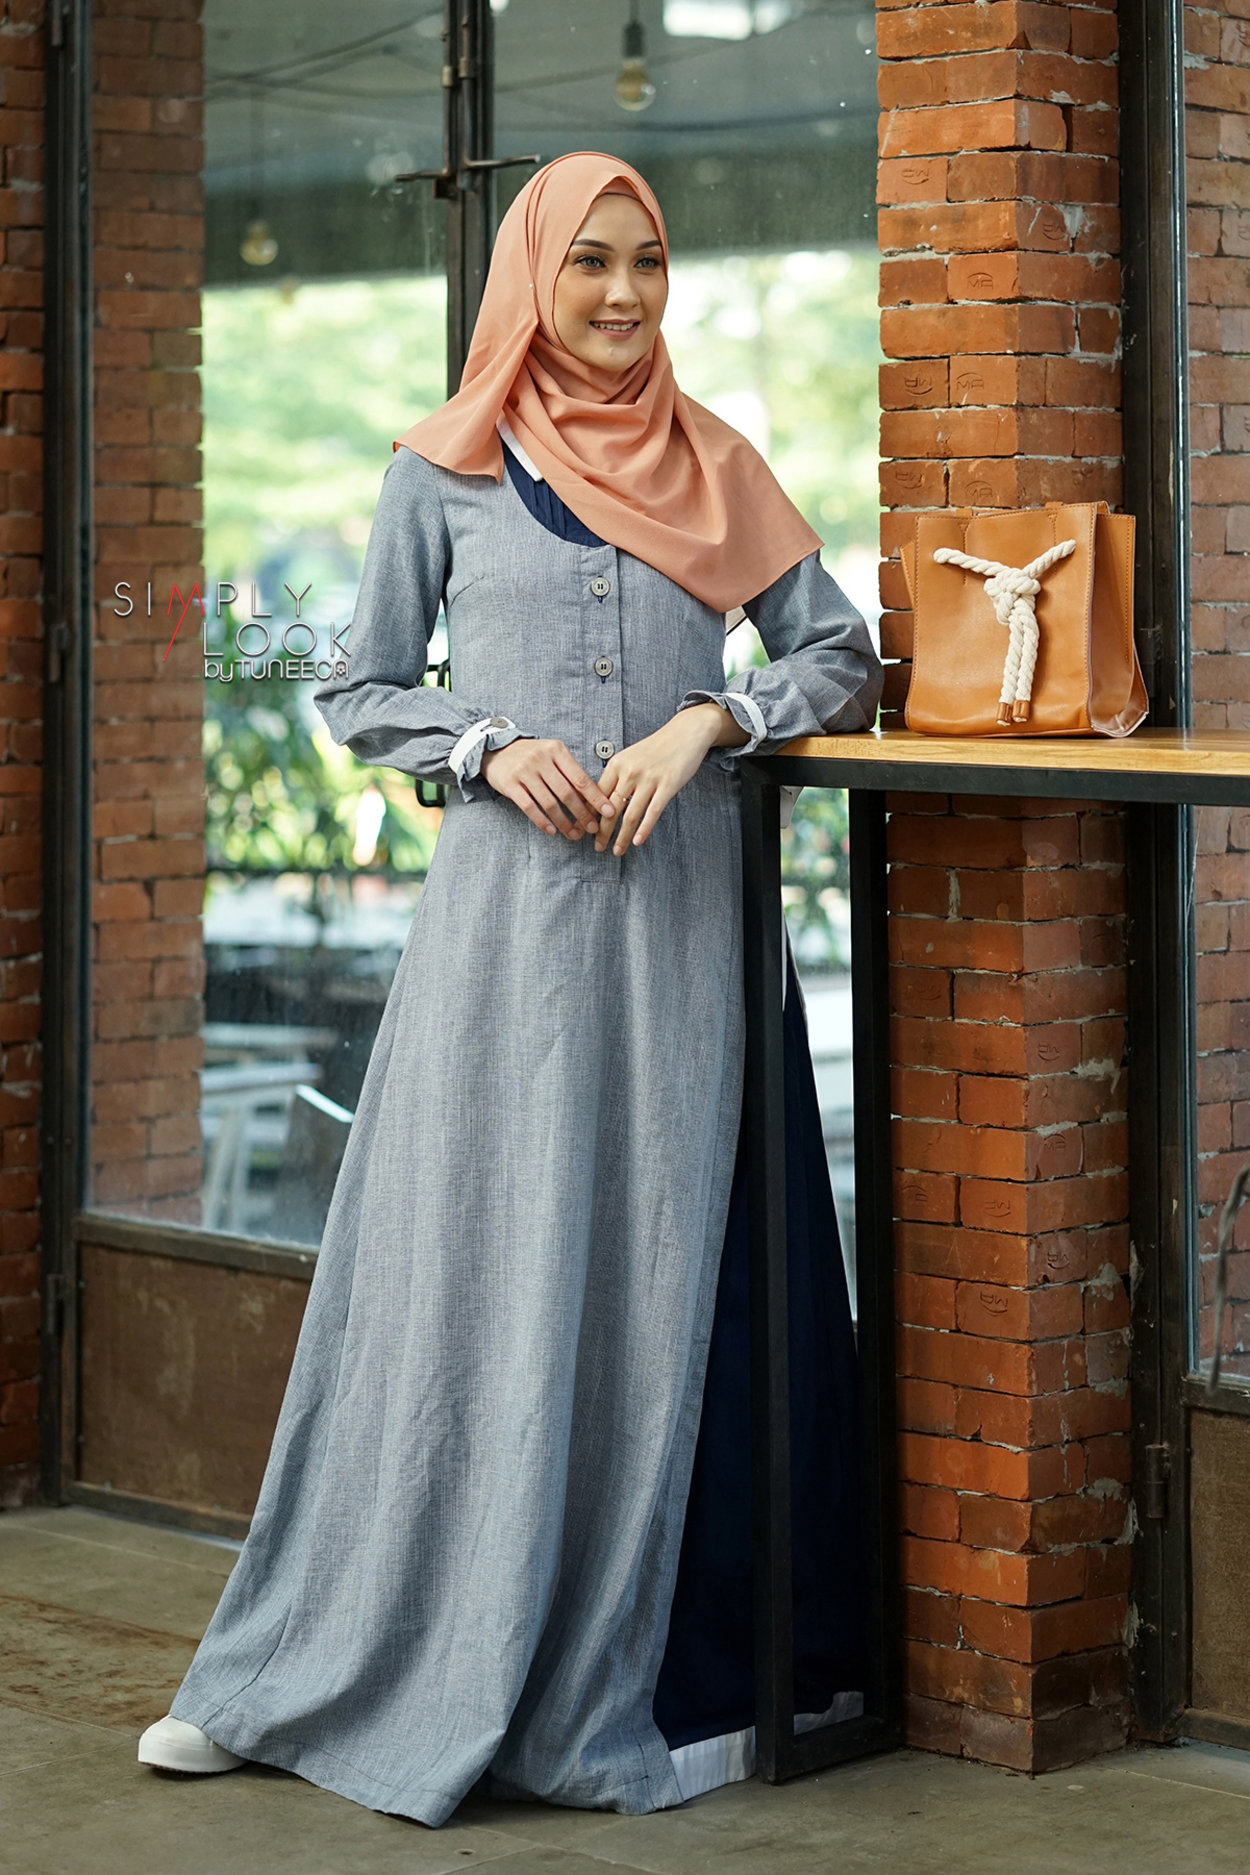 Gamis Branded Tuneeca Simply Look Be Fusion Sl 0320008 Lazada Indonesia